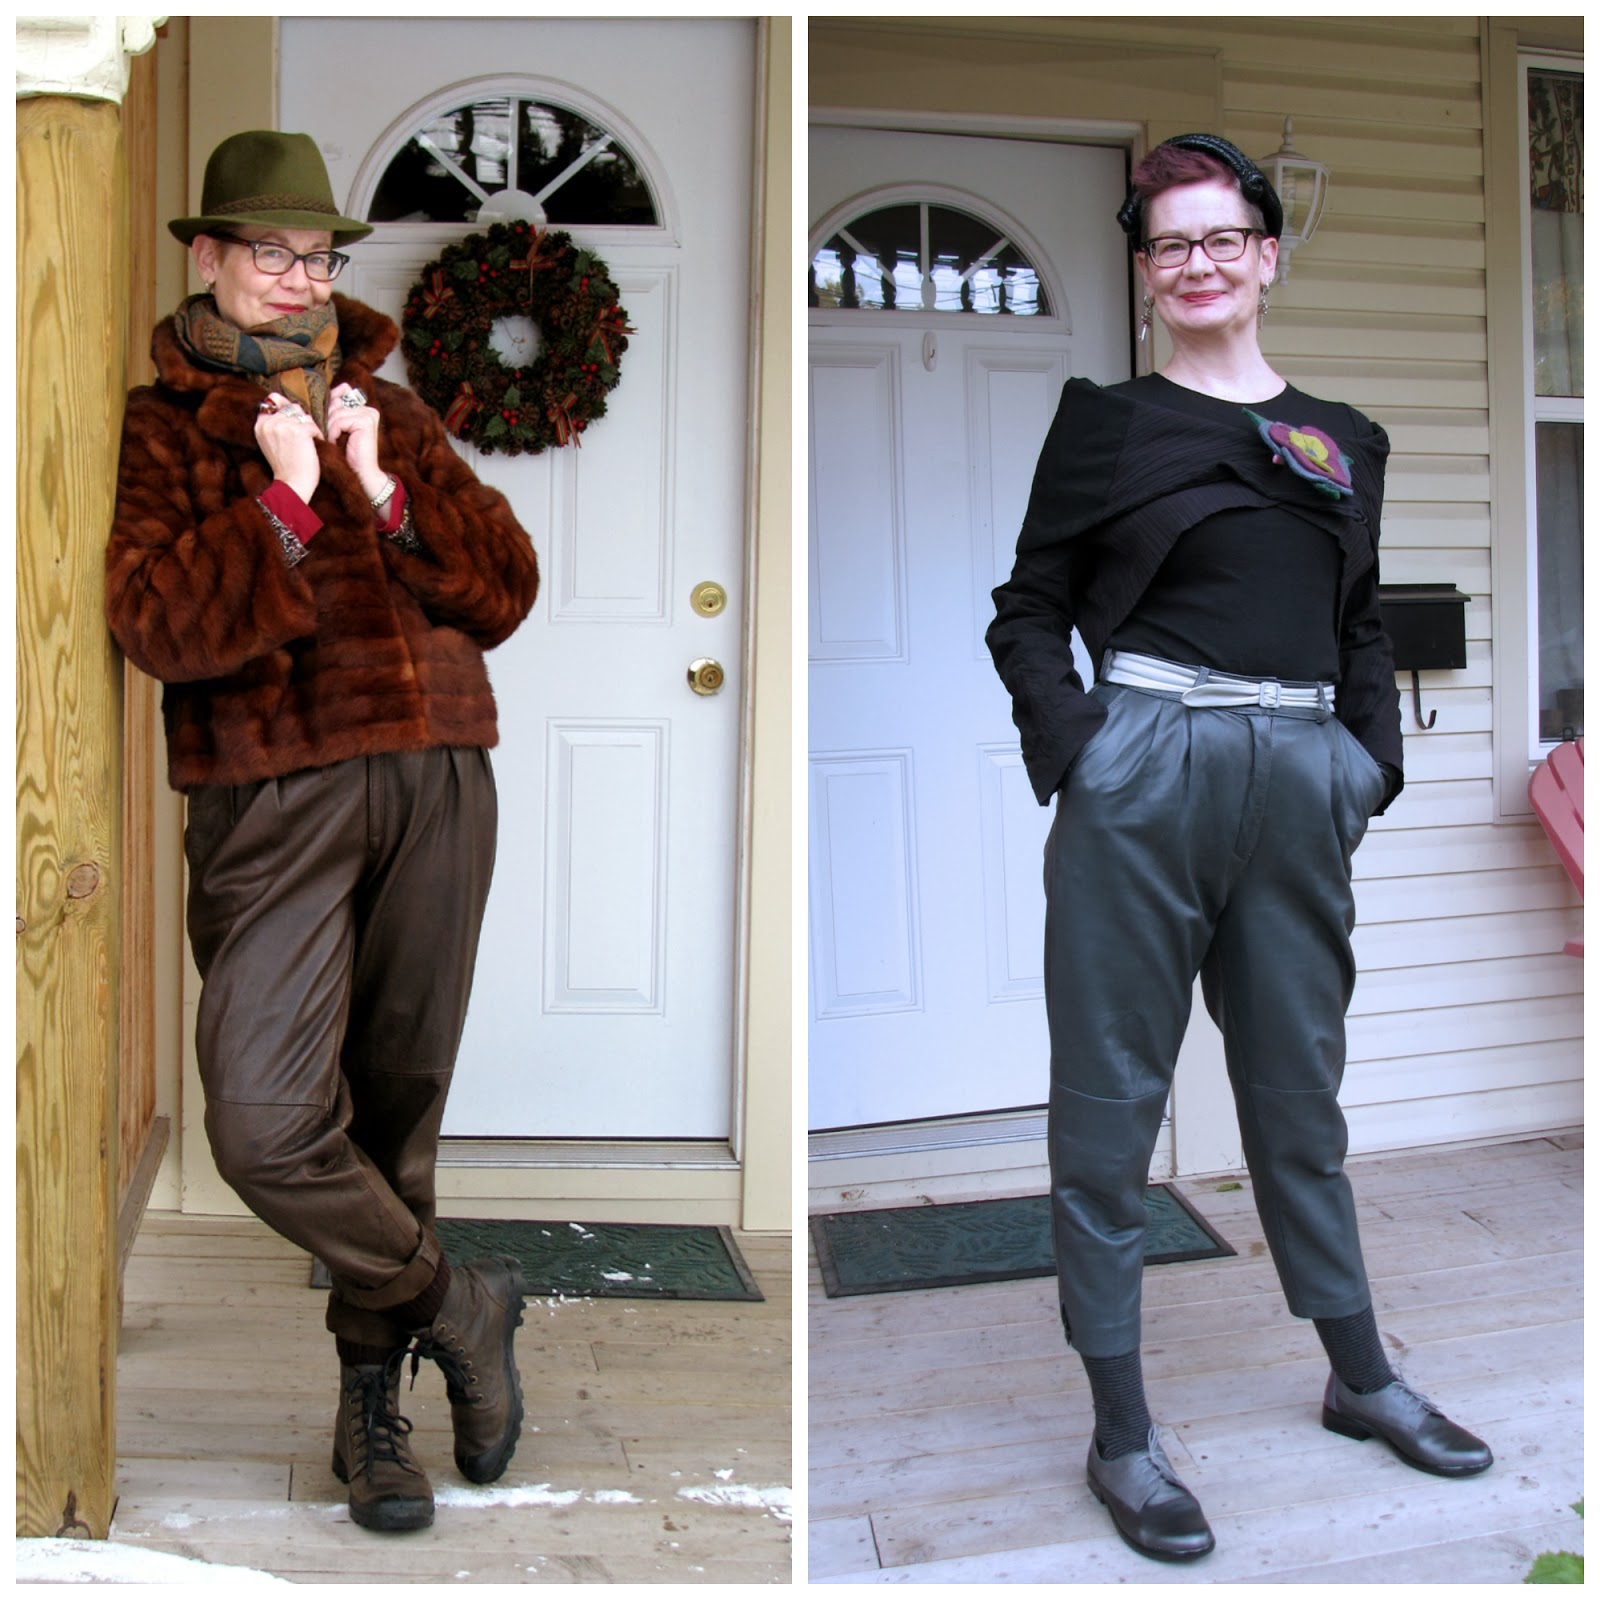 e36a87549c0b19 Flaunting my 80's pegged leather pants - the brown ones on the left were  purchased on Etsy and the grey ones on the right from The Sentimentalist.